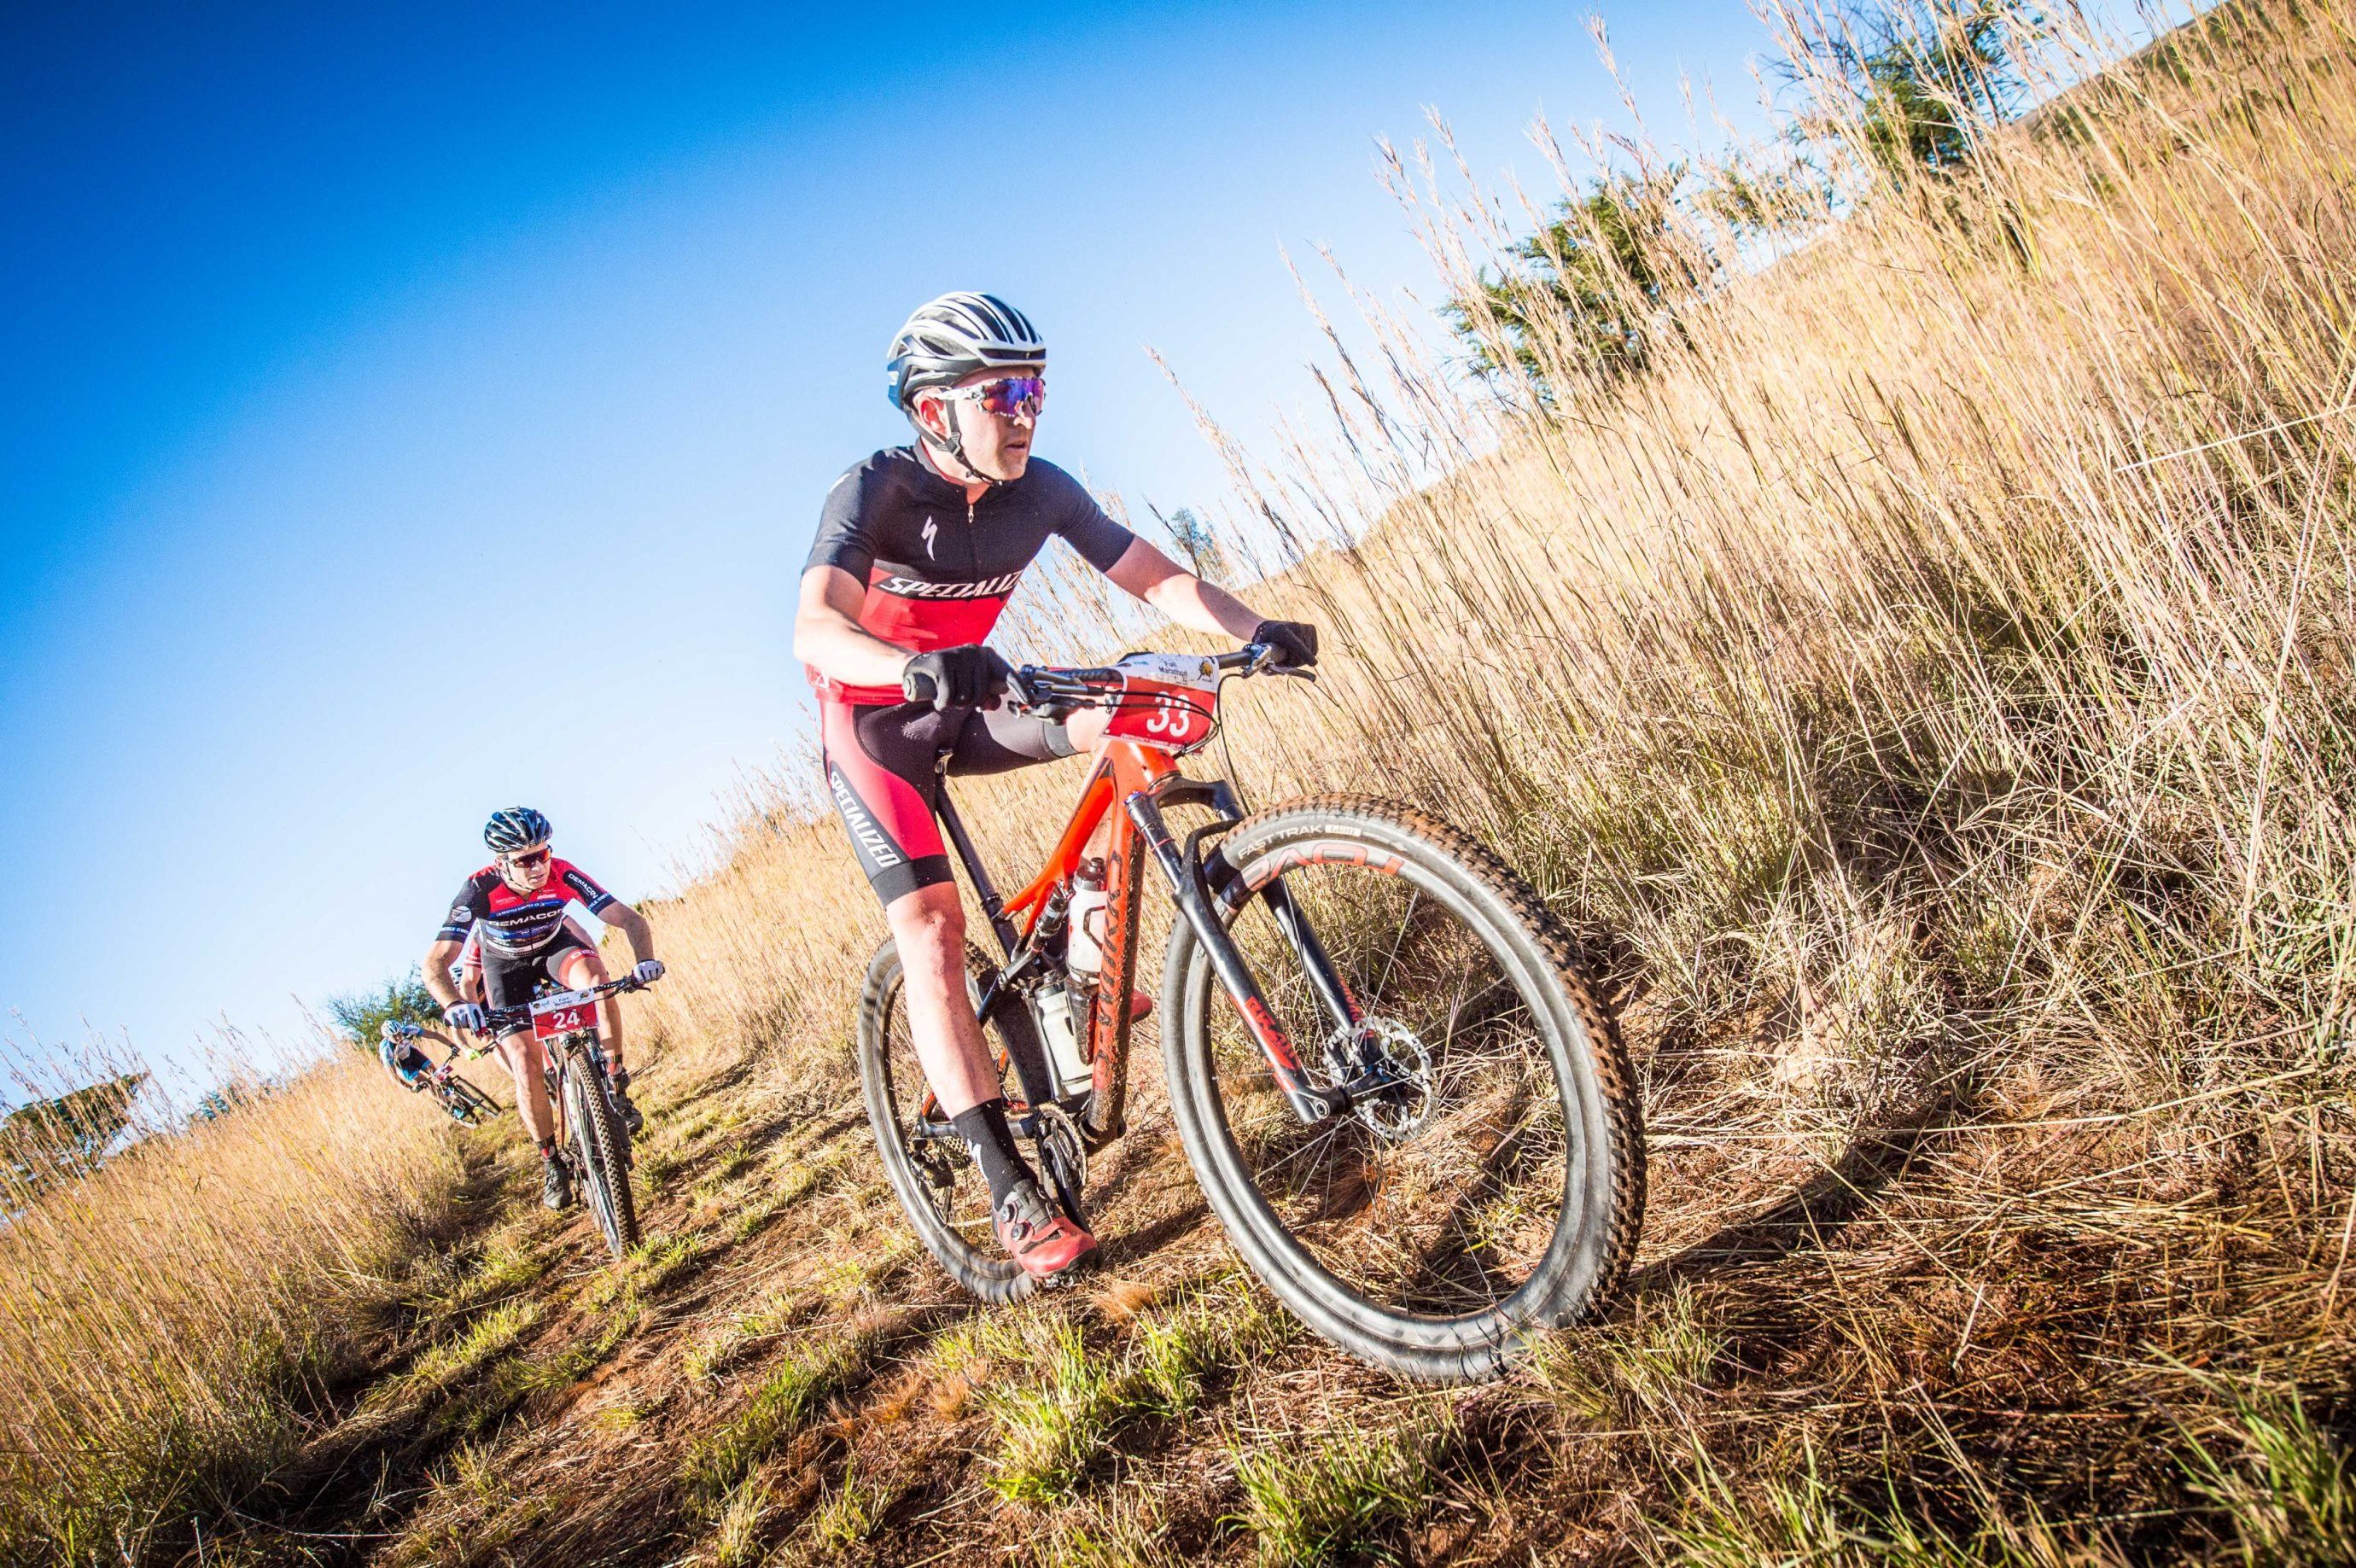 R10 000 Specialized voucher up for grabs at FNB Magalies Monster MTB Classic